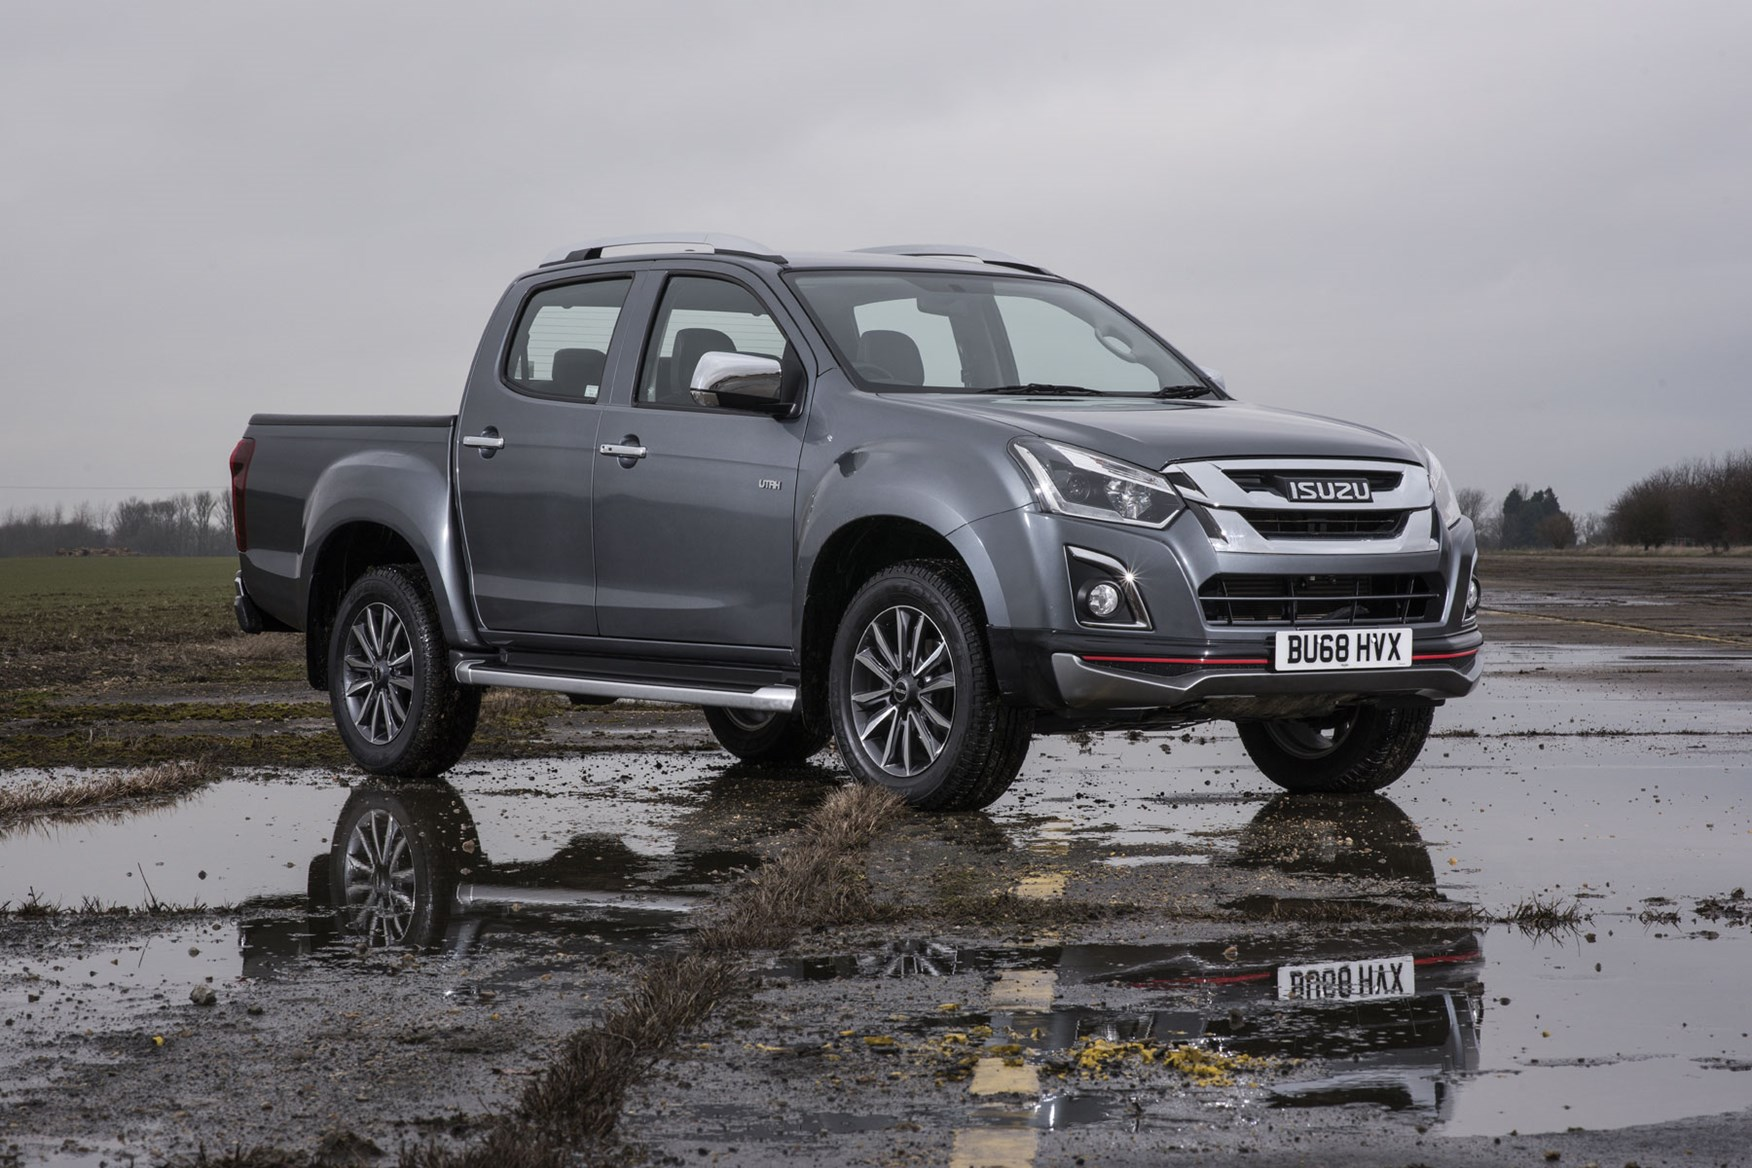 Isuzu D-Max V-Cross review - front view with front skirt, grey